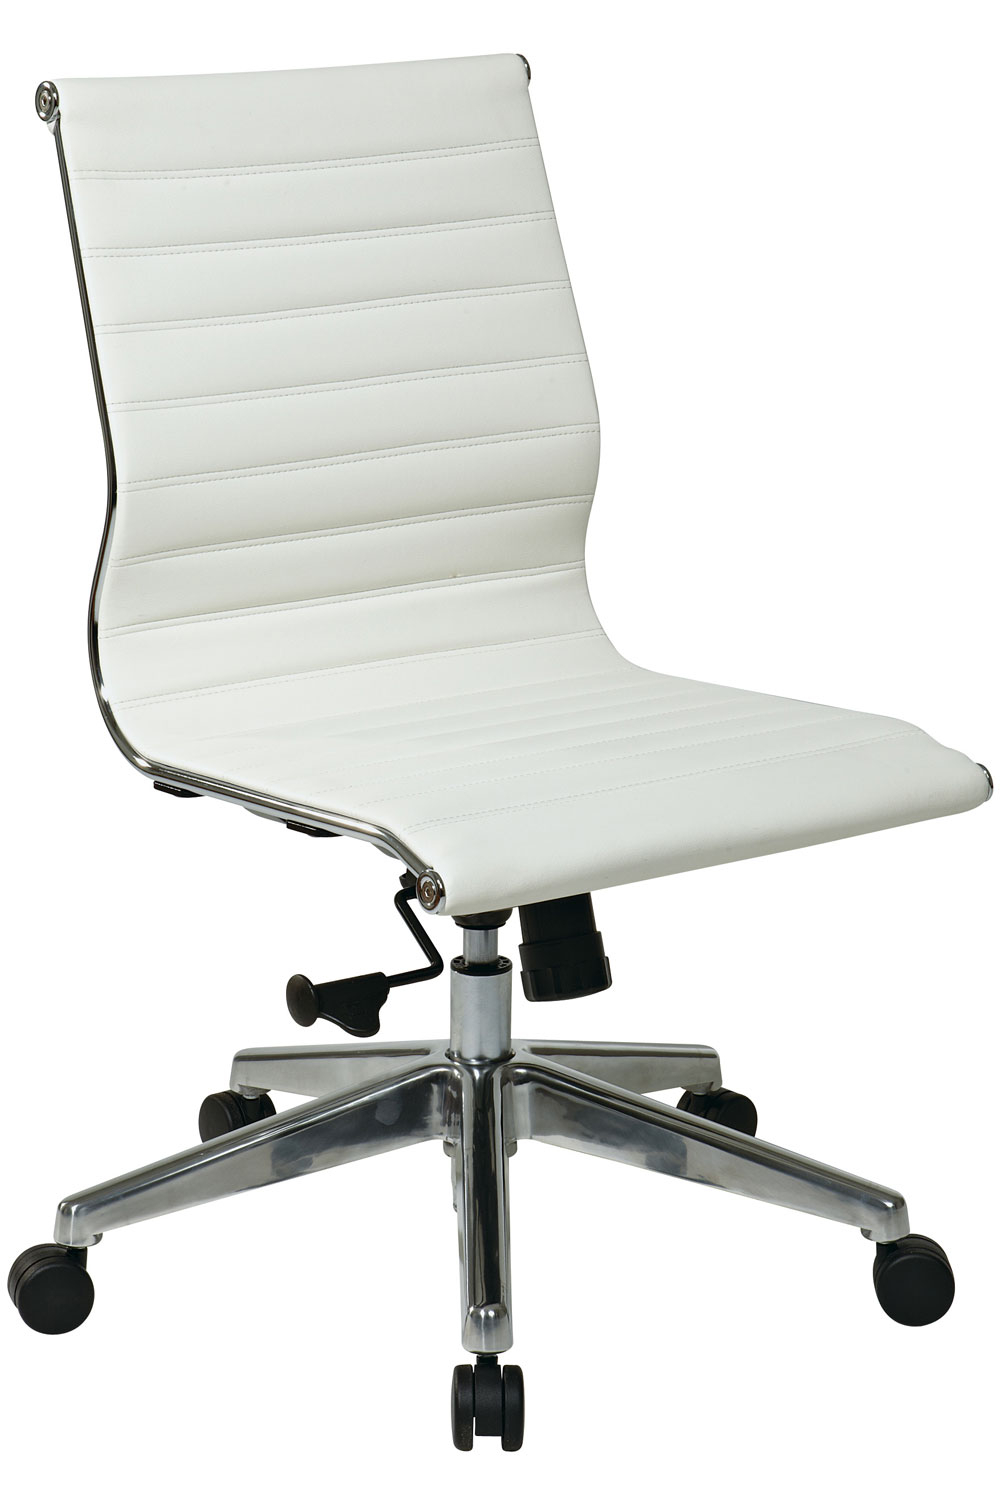 Home Design On Office Chair Without Back 90 Modern Design Full pertaining to size 1000 X 1500